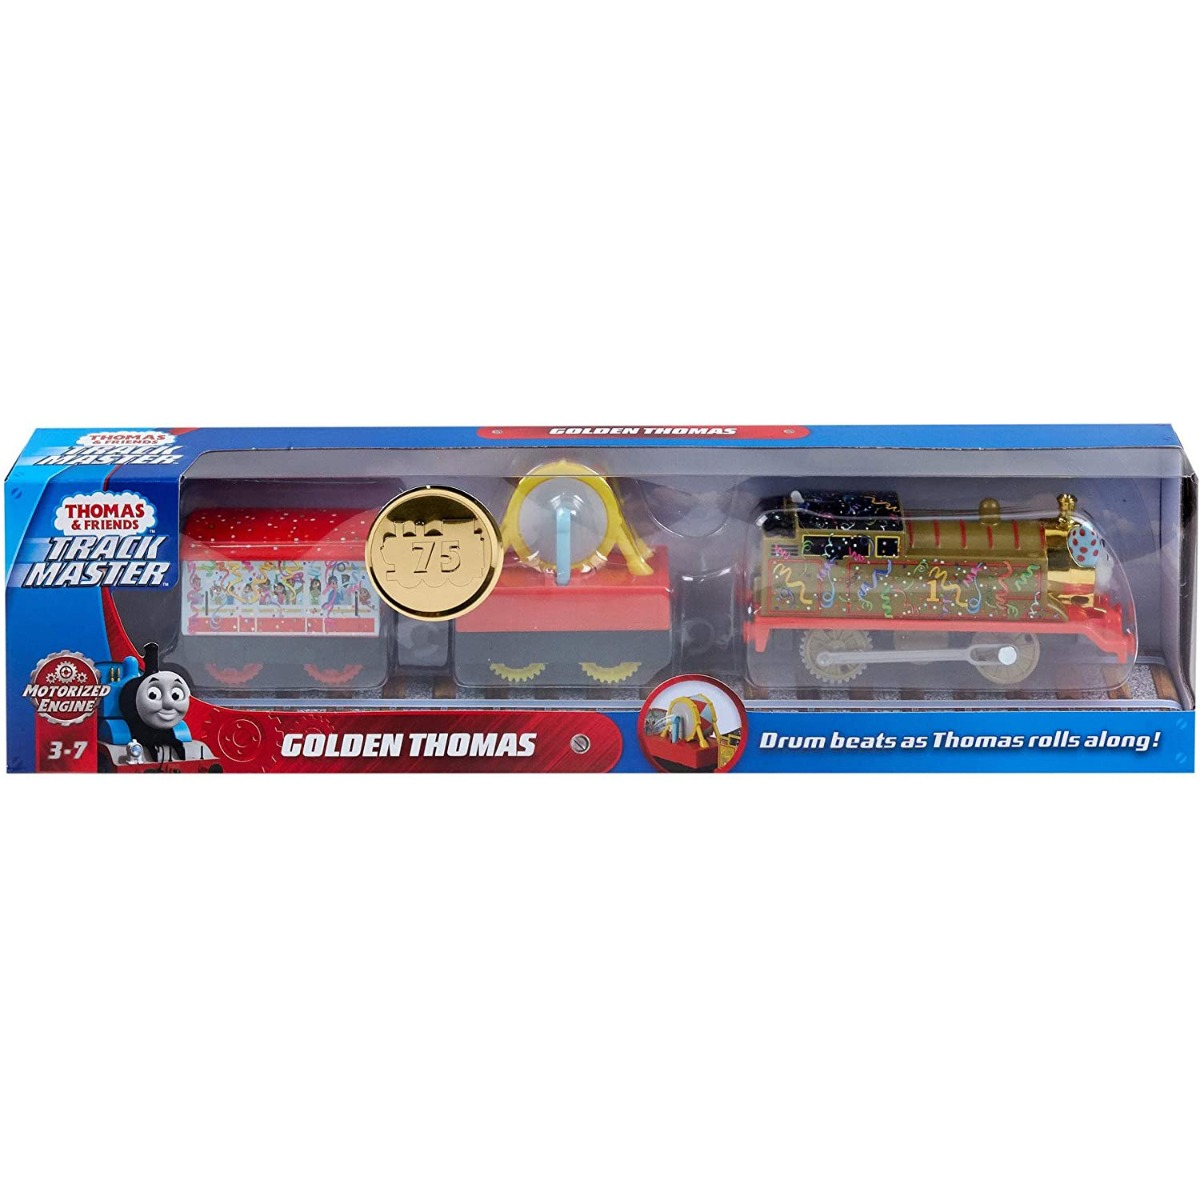 Locomotiva motorizata cu 2 vagoane Thomas and Friends, Golden Thomas